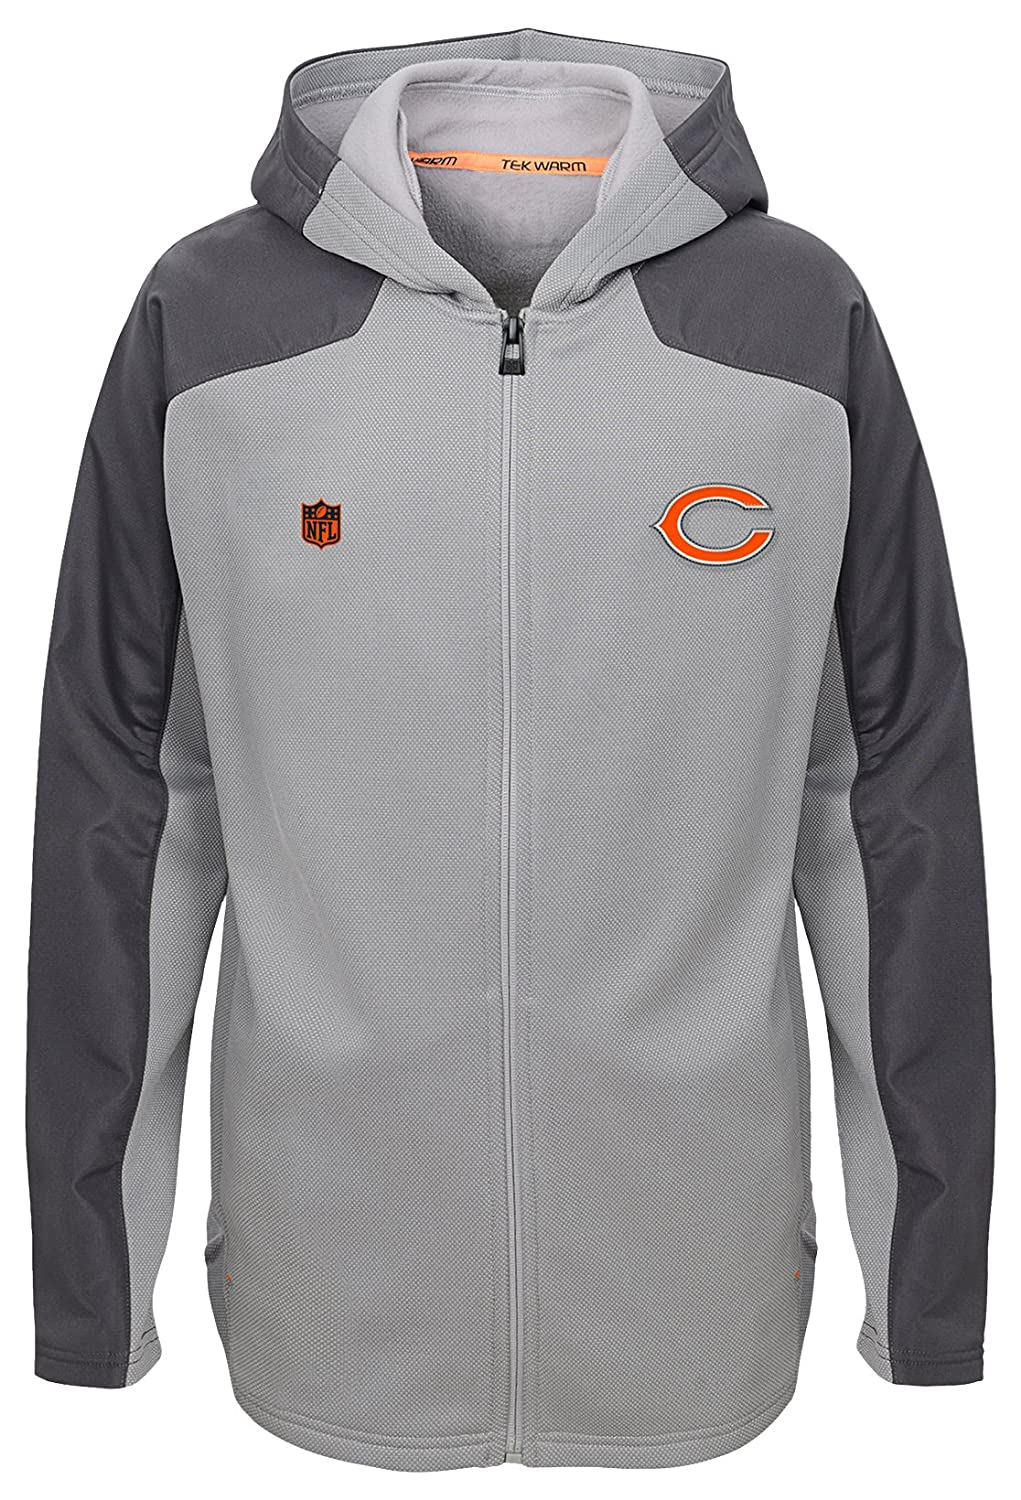 10-12 Team Color Youth Medium NFL Chicago Bears Boys  Outerstuff Delta Full Zip Jacket